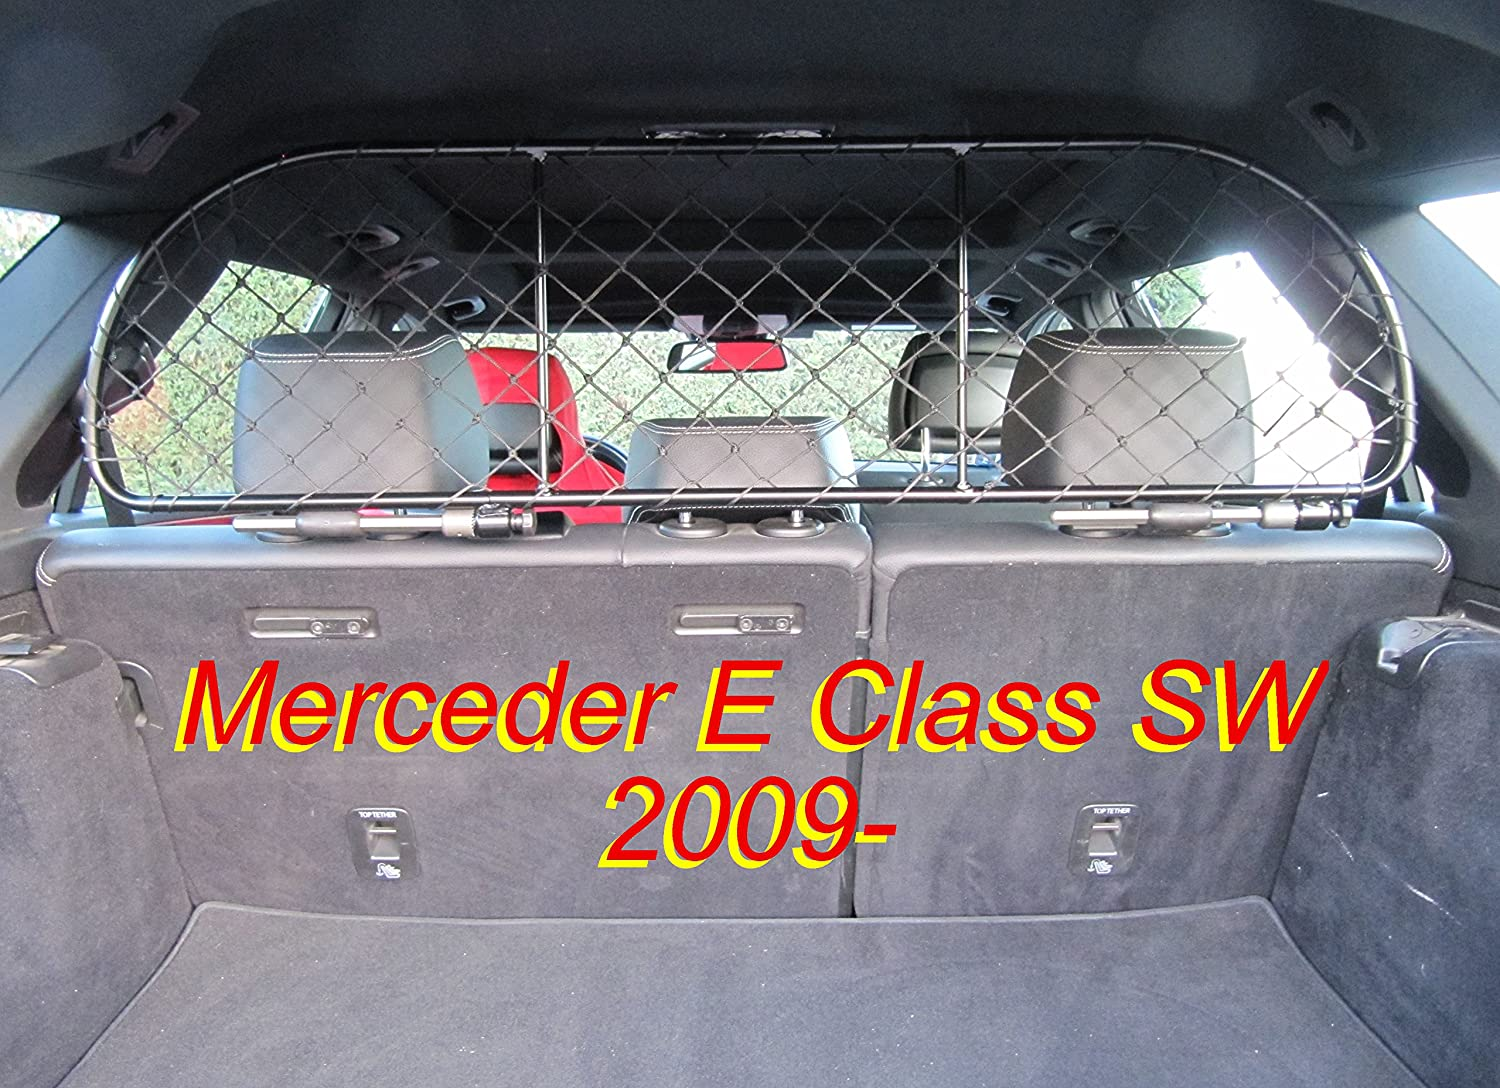 ERGOTECH Separation Net Barrier Mesh Dog Guard For Mercedes E Class Sw Estate from 2010 Onwards